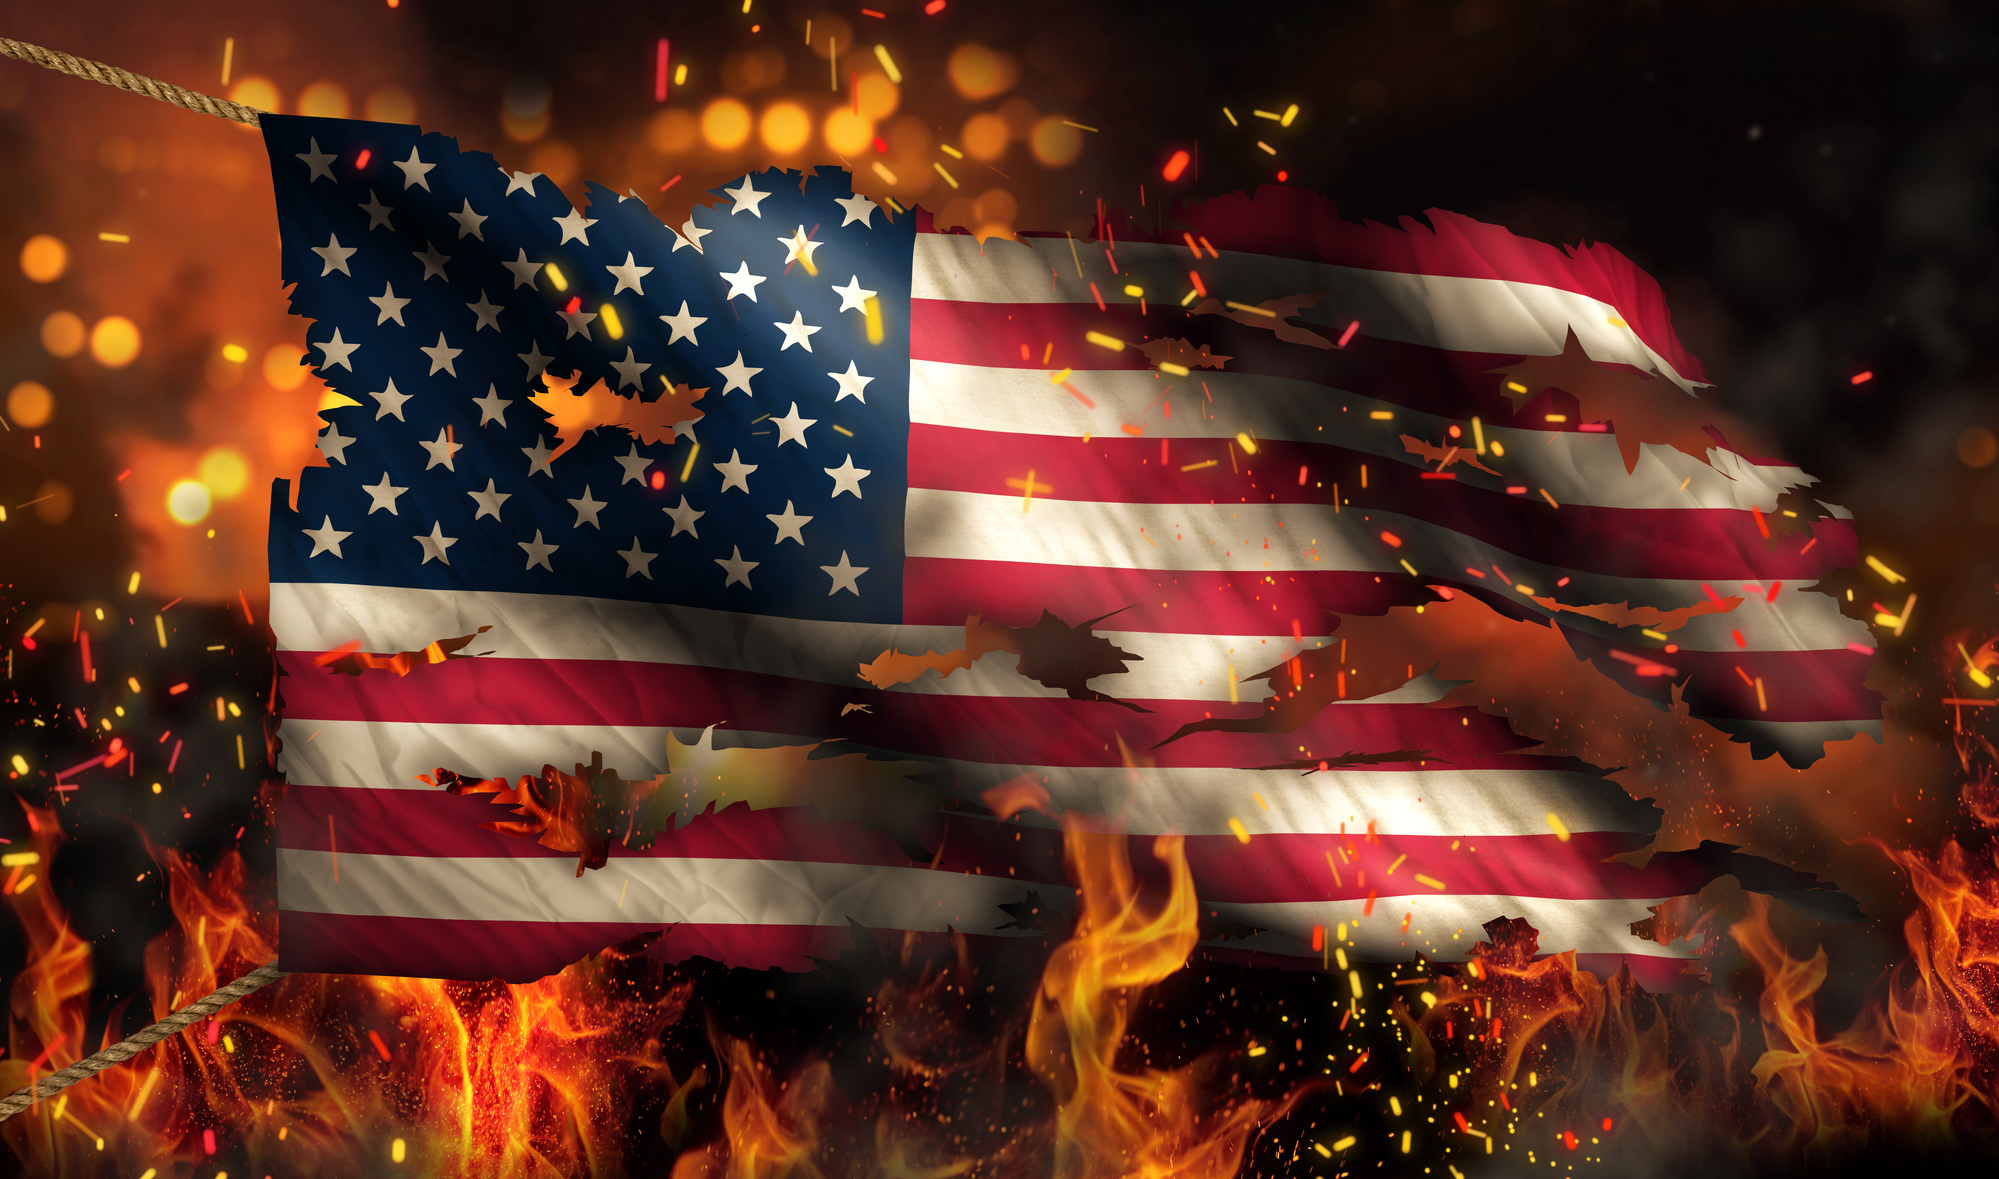 USA America Burning Fire Flag War Conflict Night